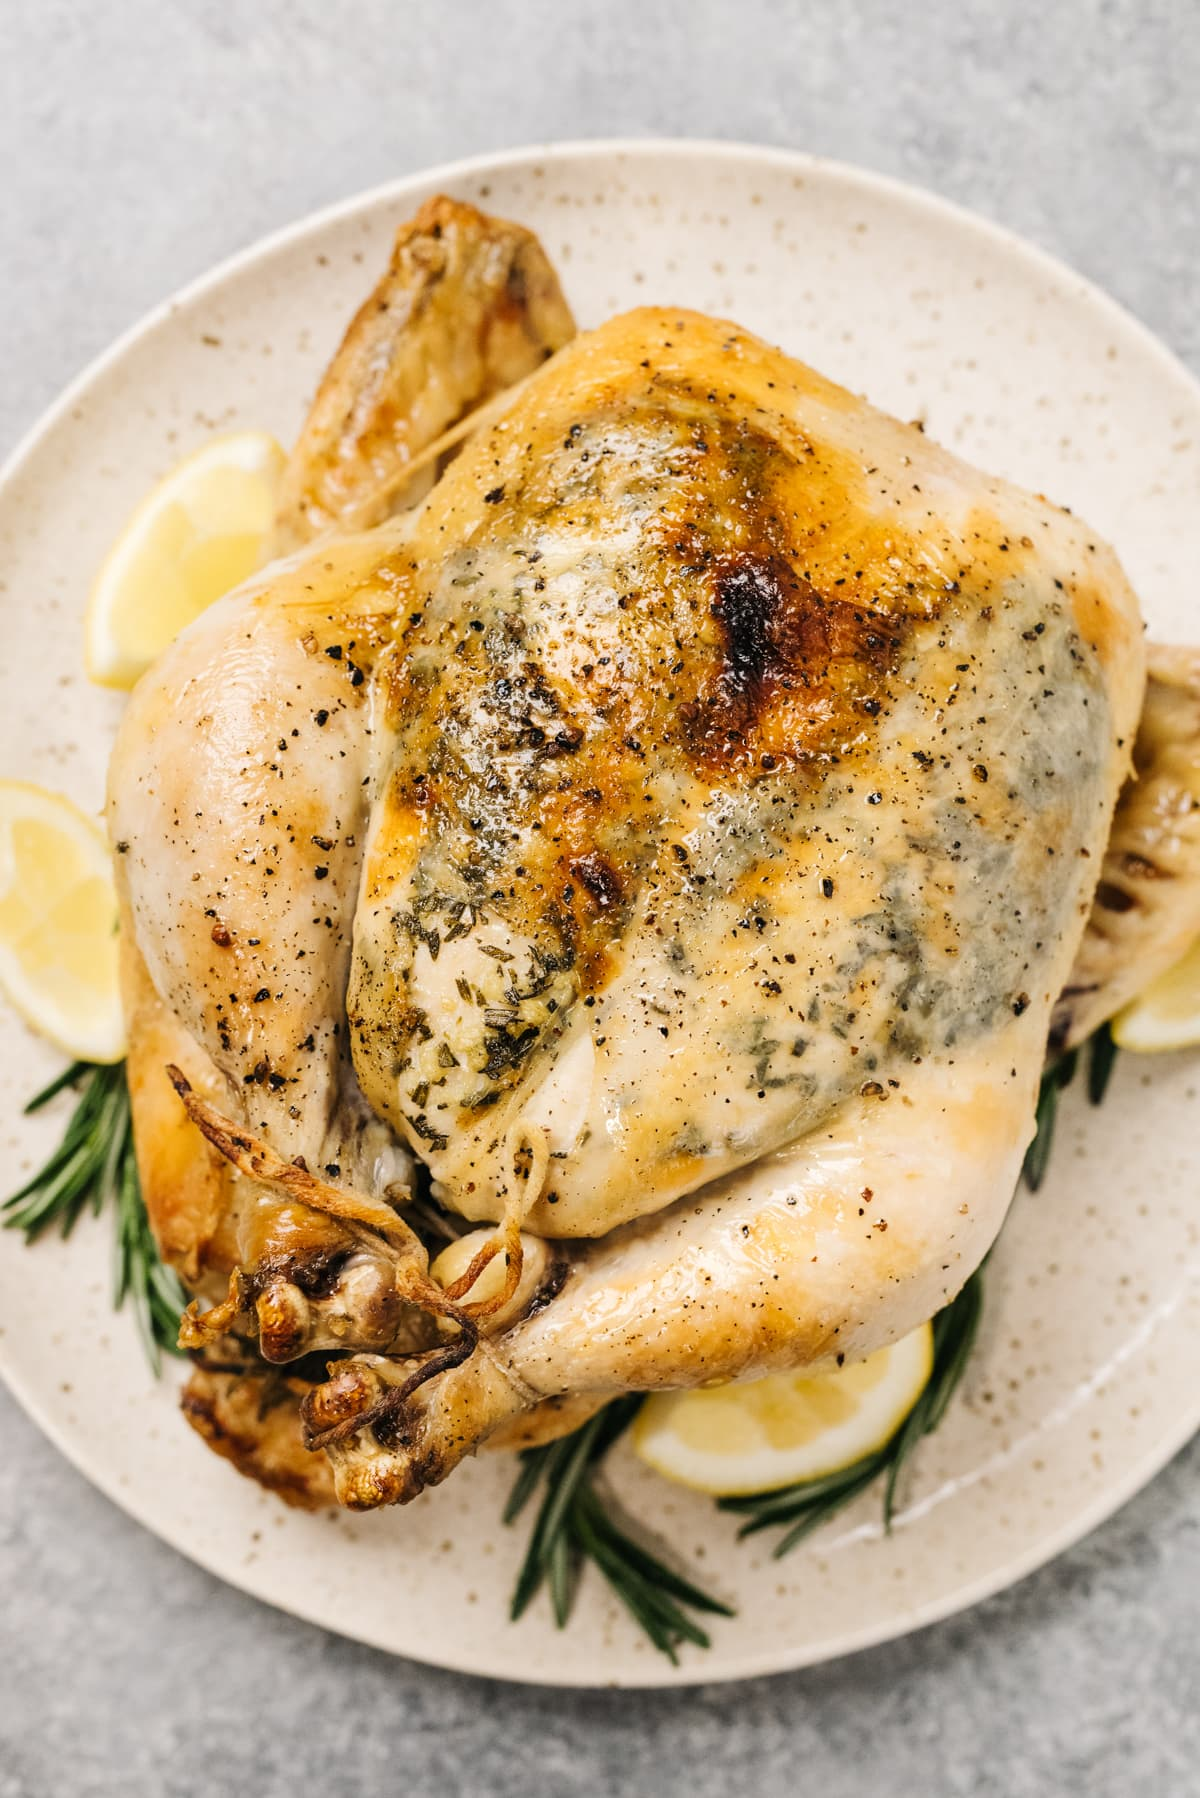 A slow cooker whole chicken on a platter with fresh herbs and lemon wedges for garnish.